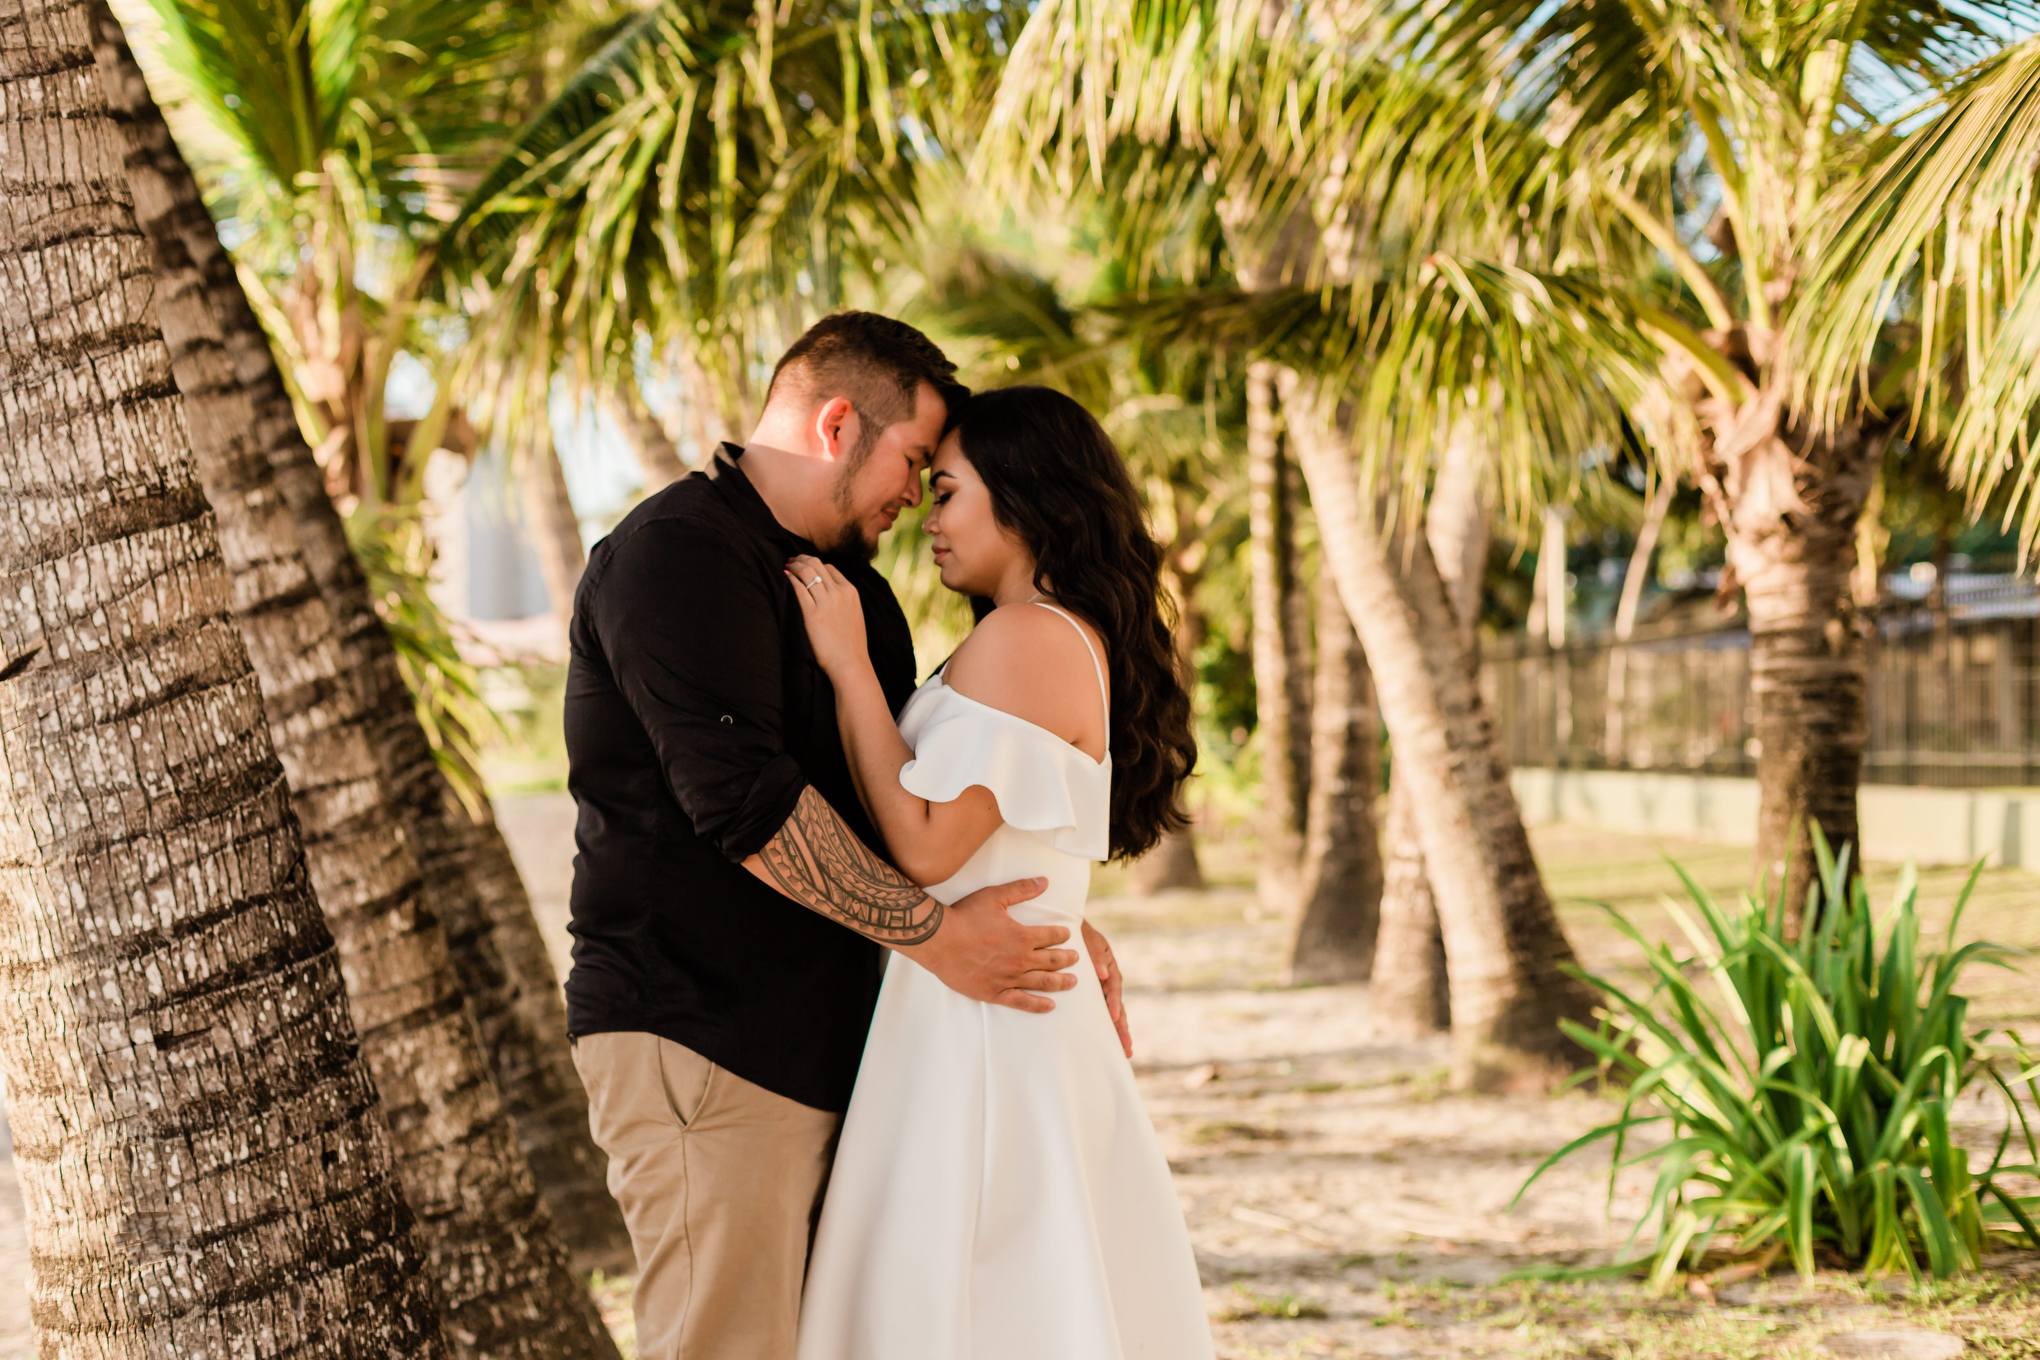 21PIXELS_Guam_Engagement_Photographer174.JPG